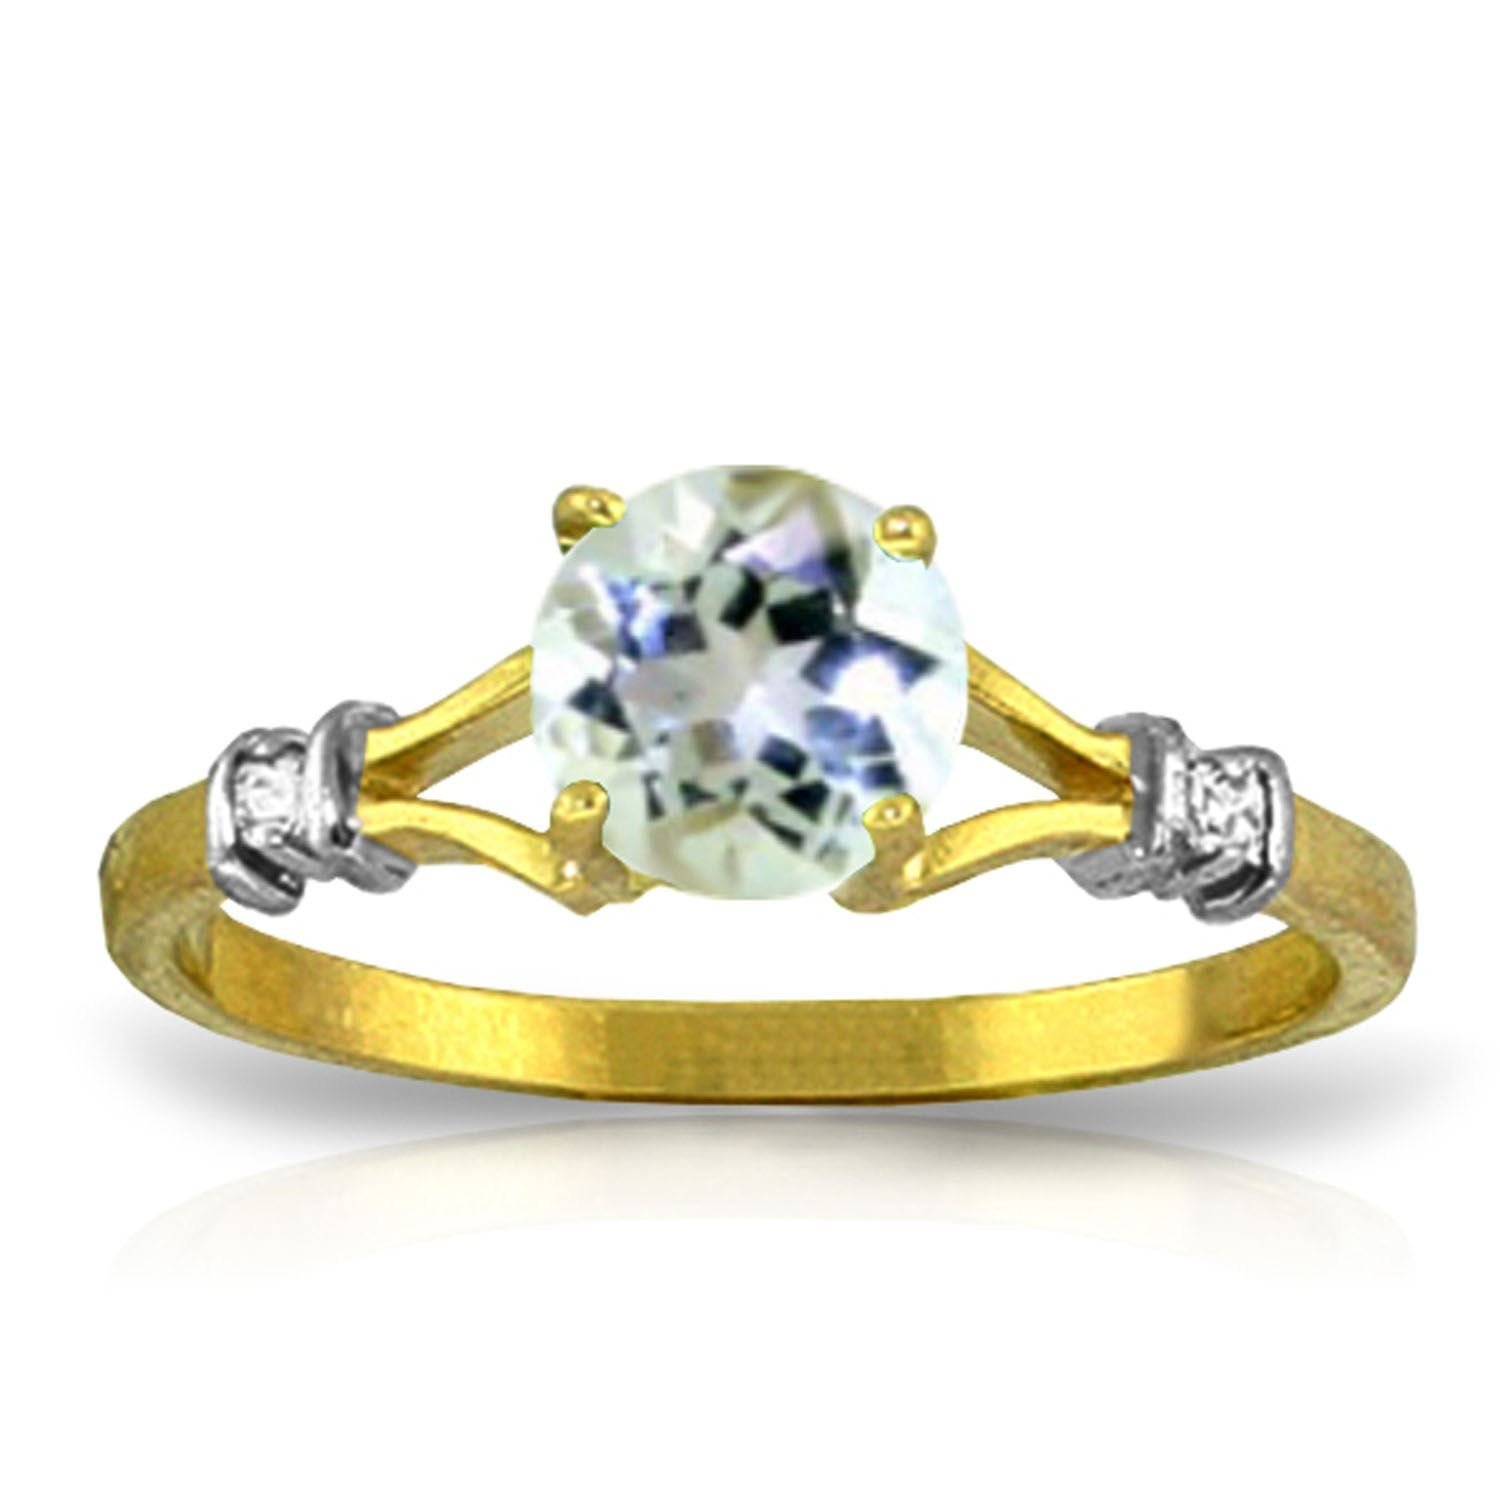 ALARRI 1.02 CTW 14K Solid Gold Visible Love Aquamarine Diamond Ring With Ring Size 8